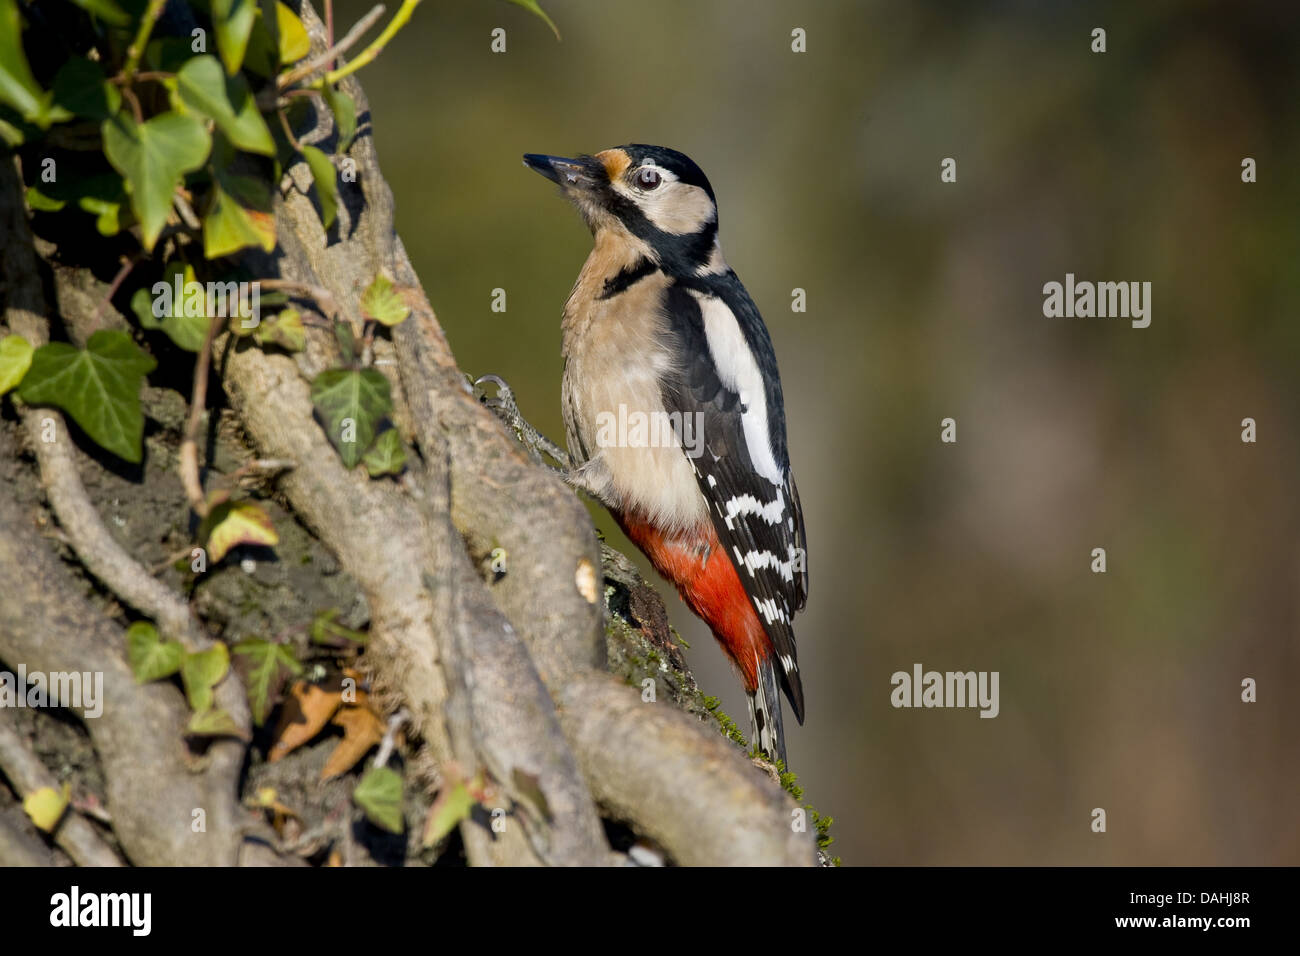 great spotted woodpecker, dendrocopos major - Stock Image